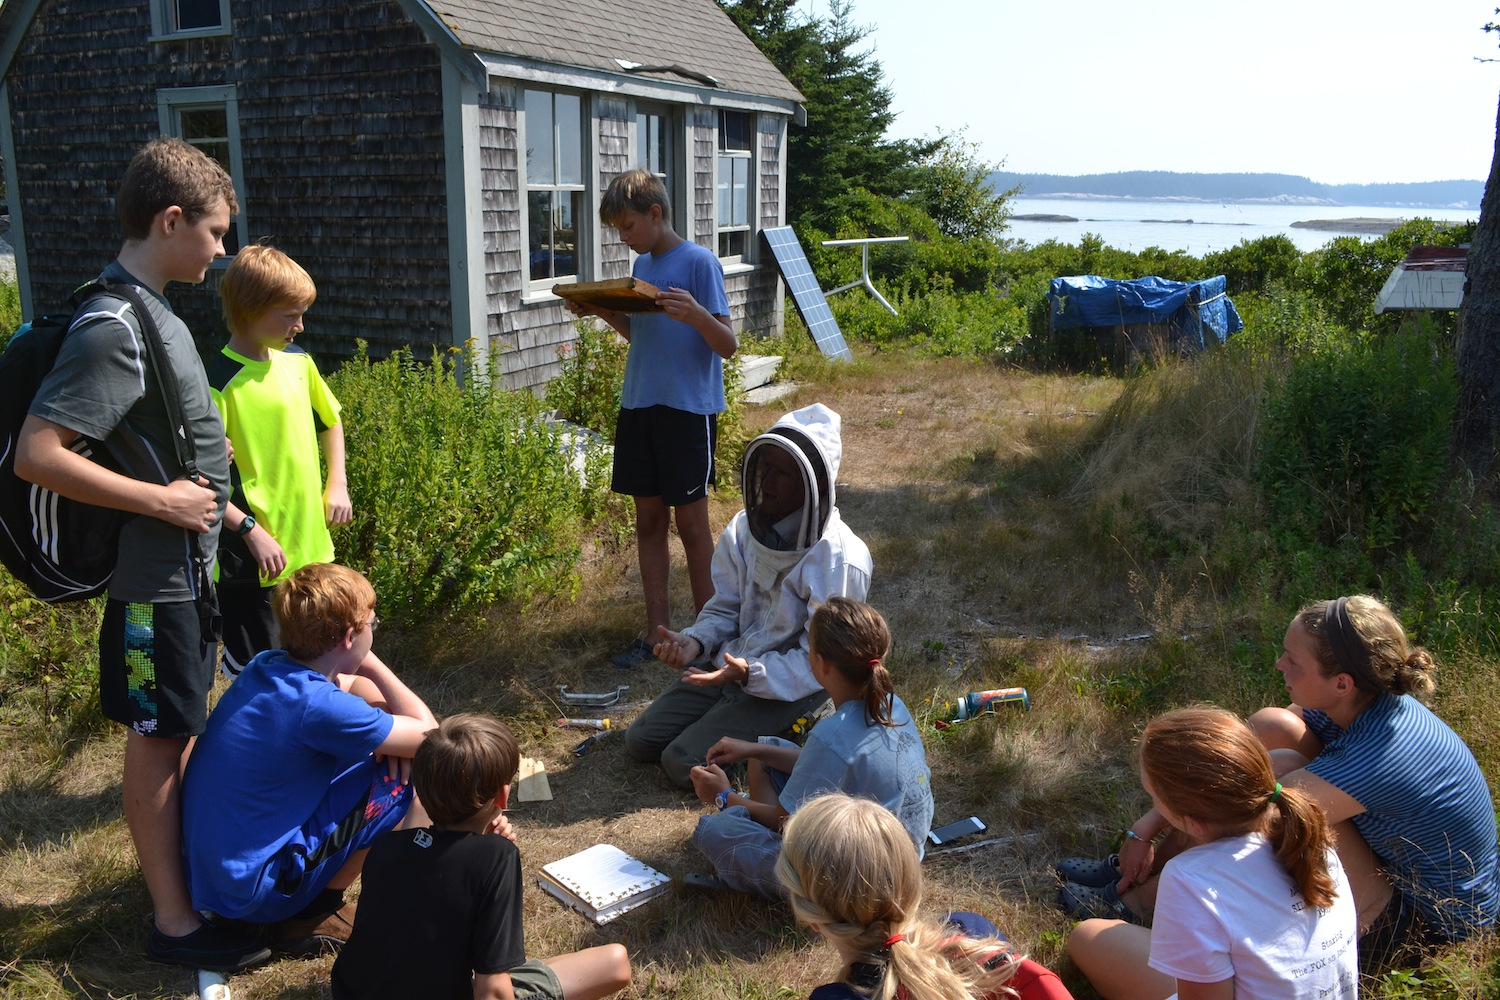 Learning about bees with Sam, click to see the full photo gallery from the program.